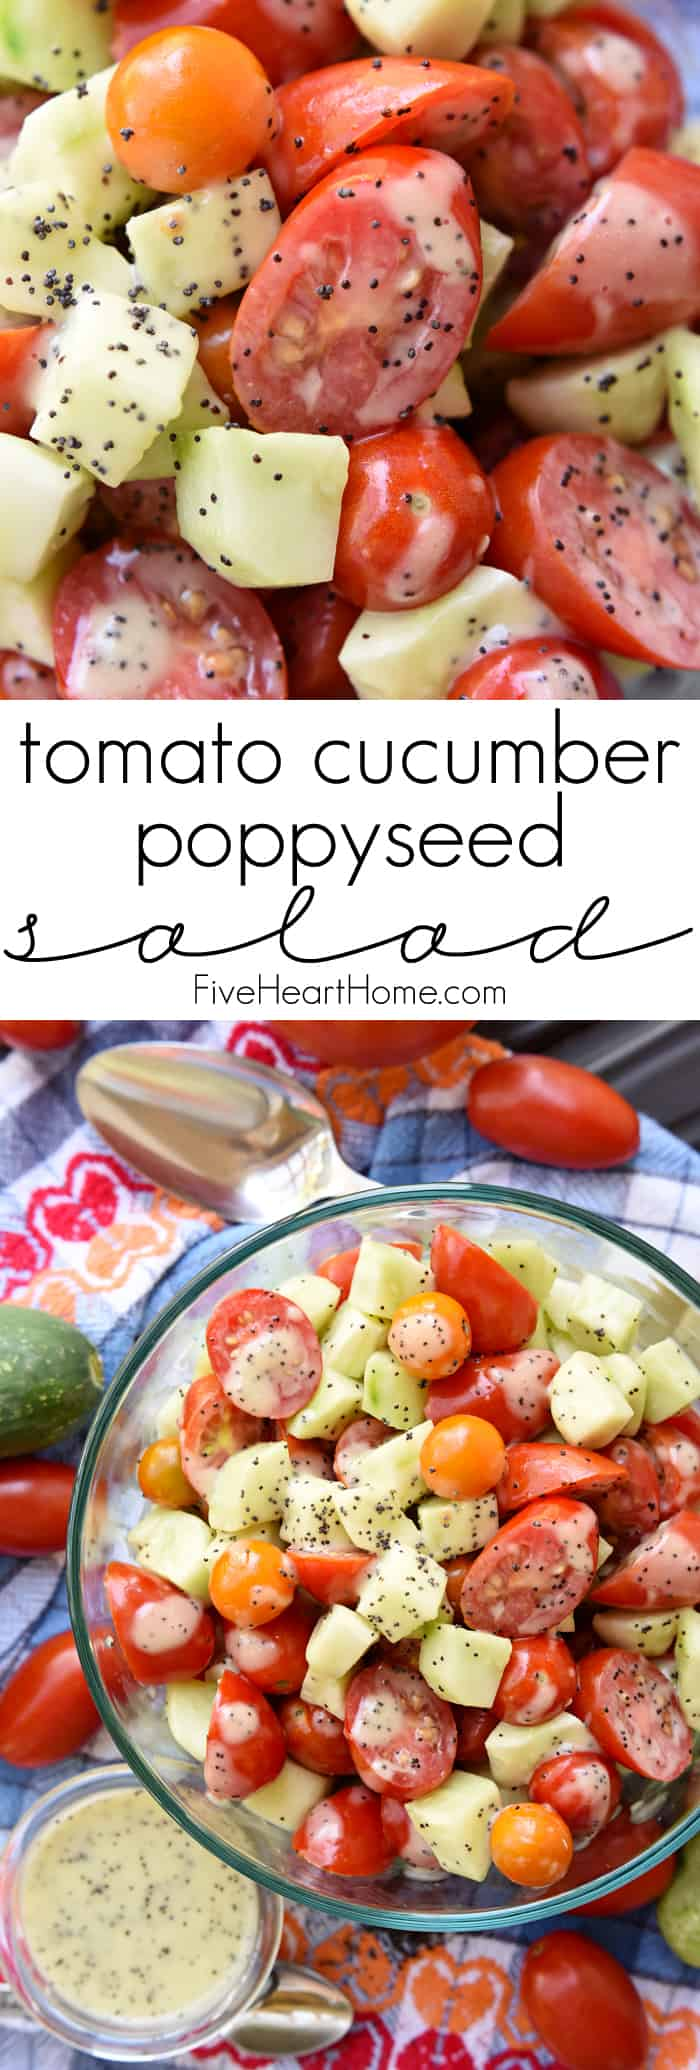 Tomato Cucumber Poppyseed Salad Collage with Text Overlay